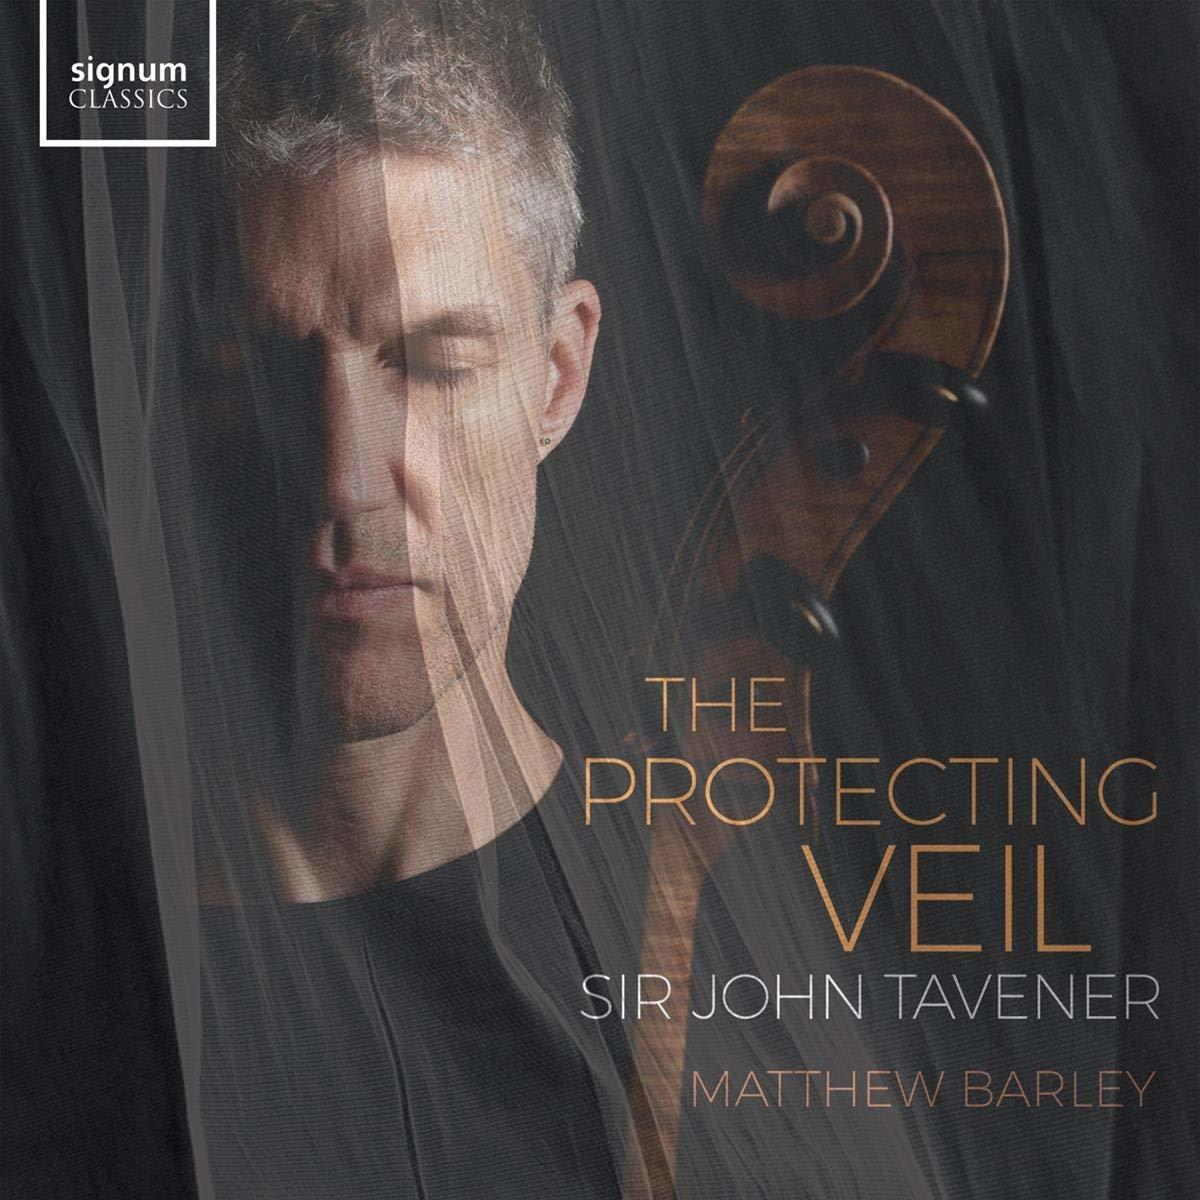 Sir John Tavener: The Protecting Veil